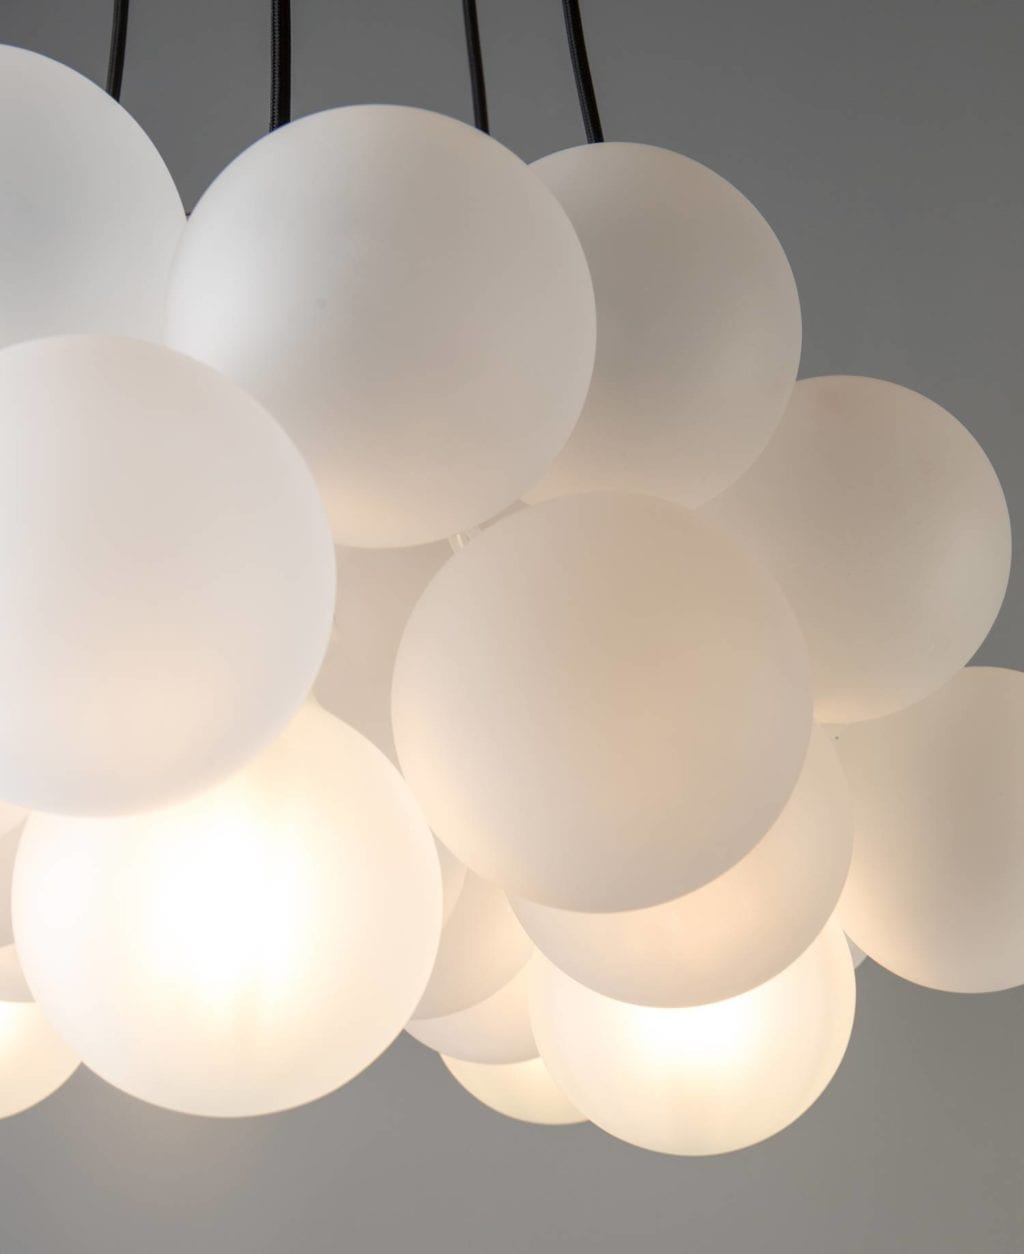 frosted bubble chandelier suspended from black fabric cable against grey background